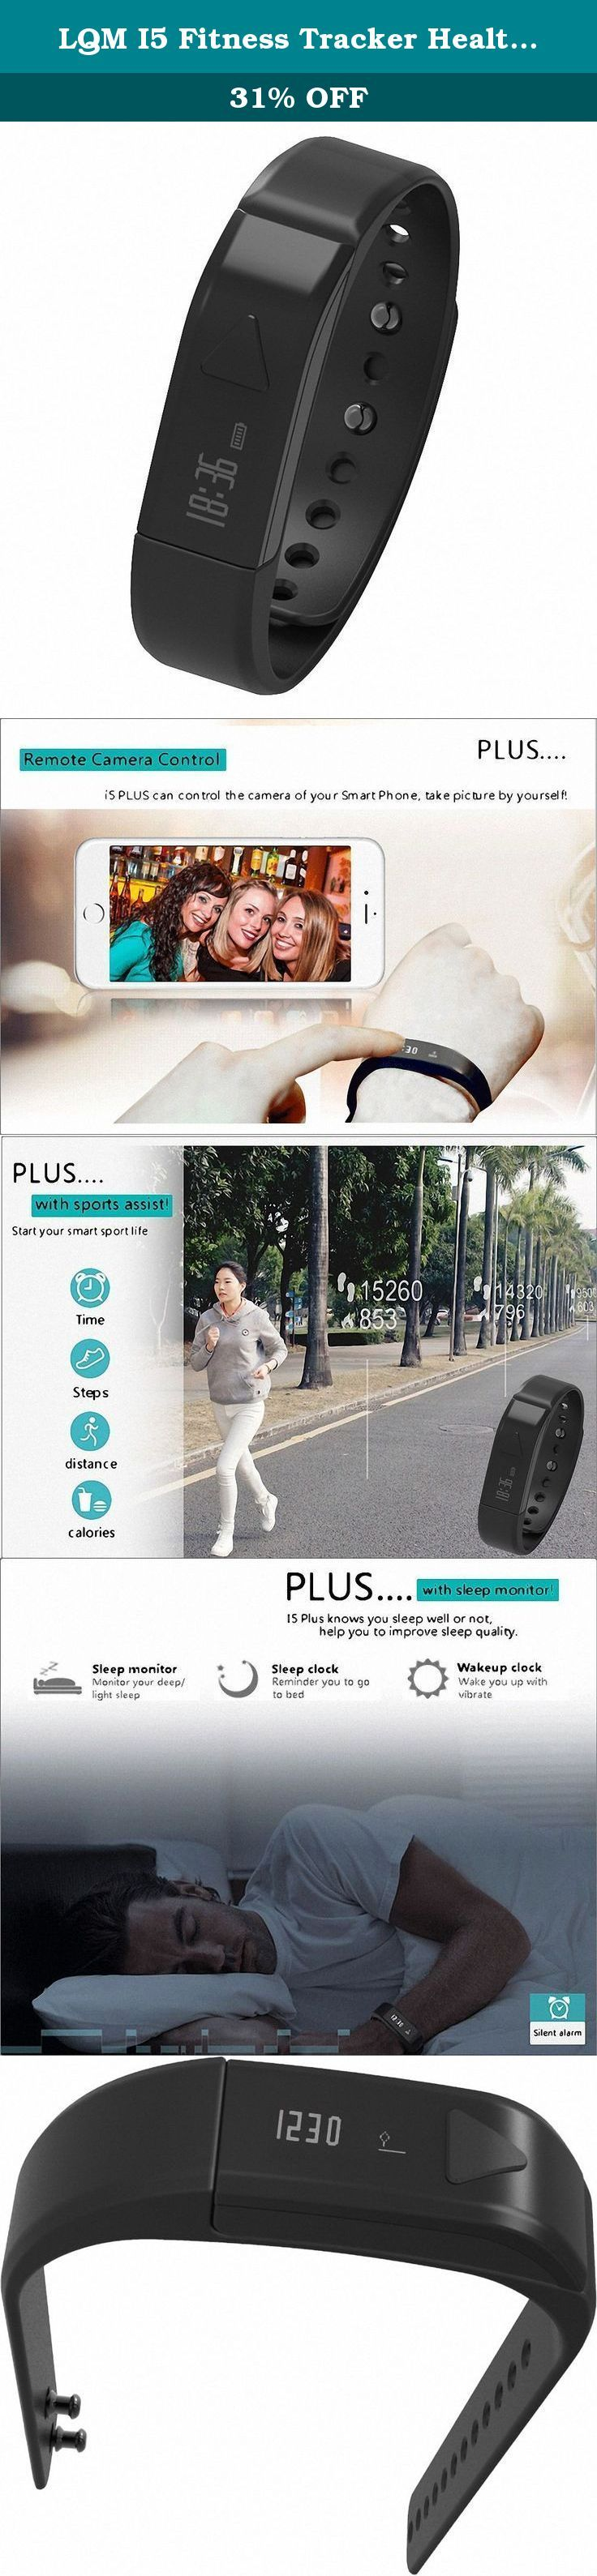 LQM I5 Fitness Tracker Health Smart Bracelet Sleep Monitor Bluetooth Pedometer Sport Wristband TPF PC Material(Black). App Download Guide Video:https://youtu.be/sZEahb5bWGI APP Video: https://youtu.be/ArM28FdkUVo Basic parameters Dimensions: 69.1*15.8*11.2mm Net Weight: 18g Key life: more than 10,000 times Control: Key operation / Key switch Power and battery Lithium ion polymer battery 40mAh Battery life time up to 4~6 days USB charge: Full charge only need 30 minutes Senor and interface...